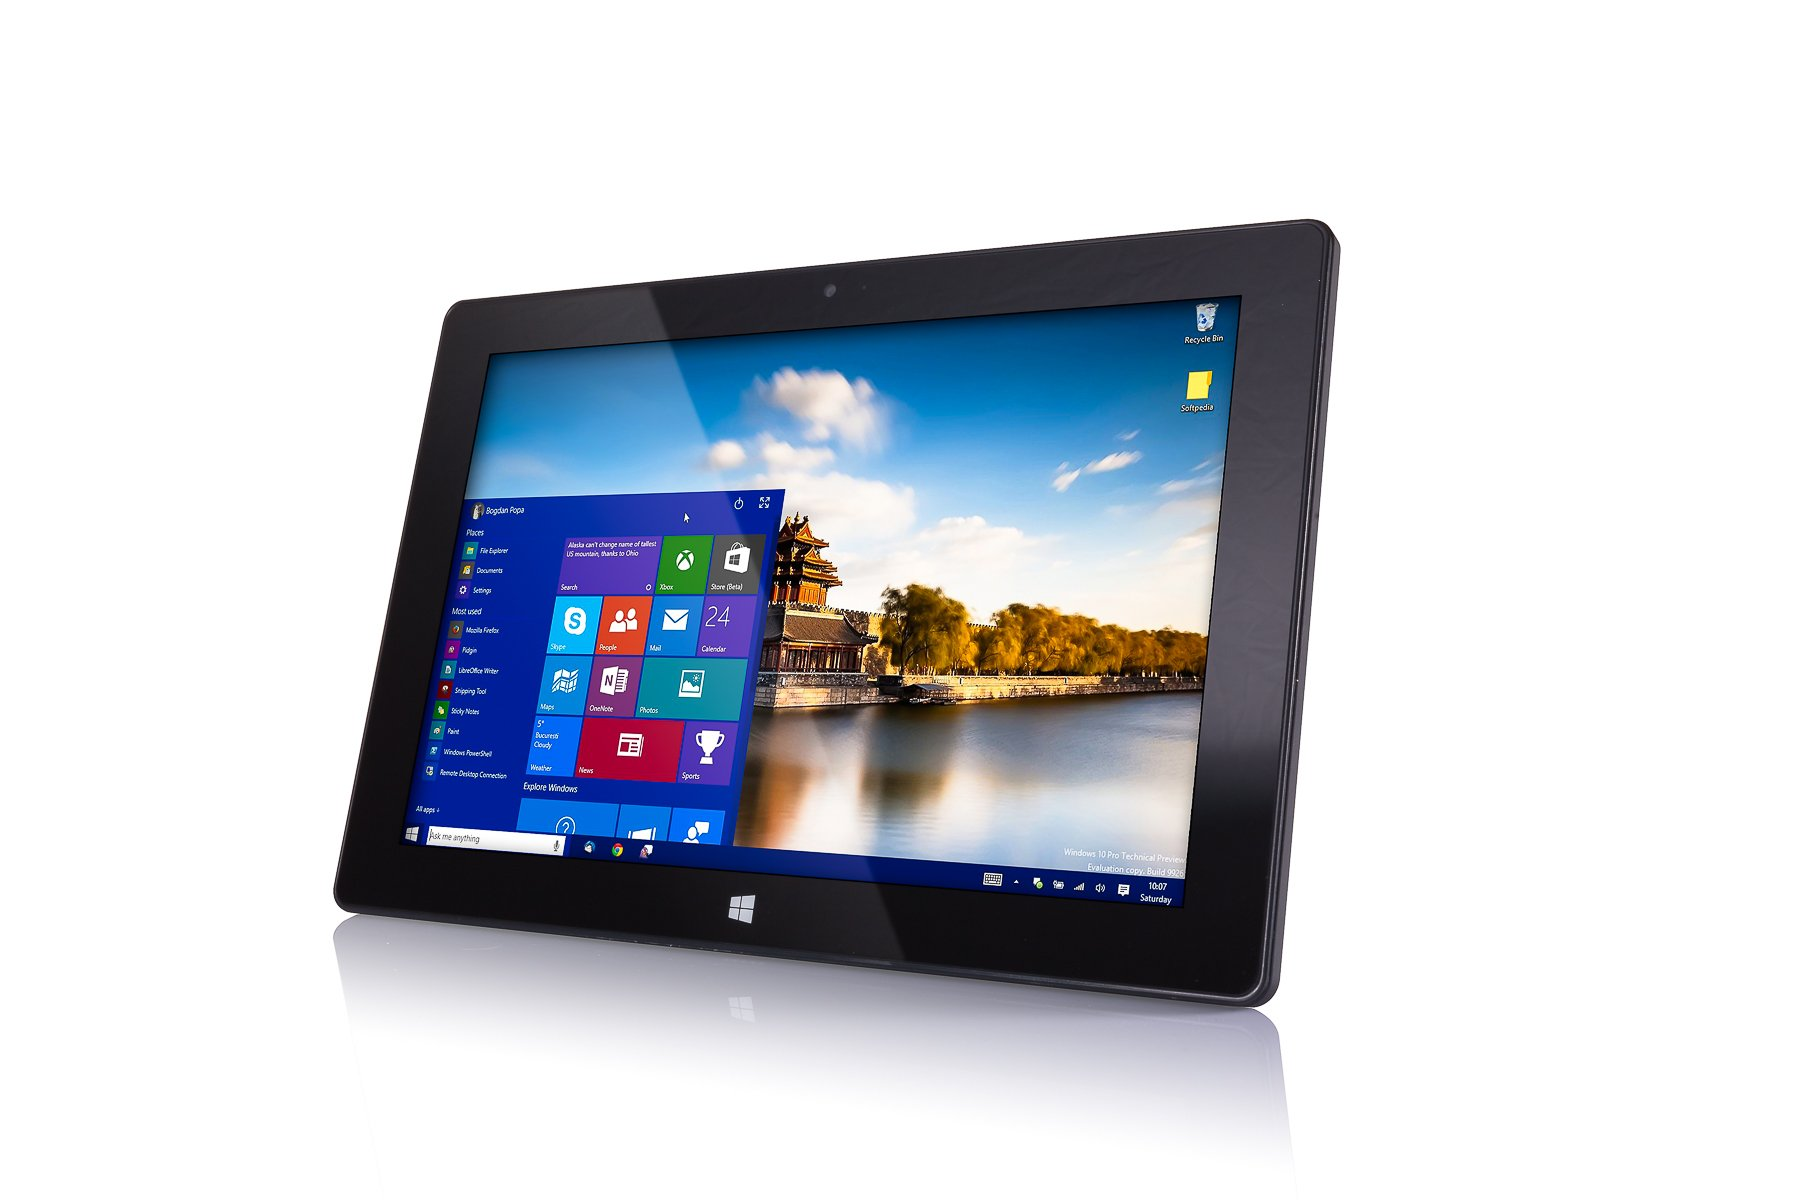 10'' Windows 10 Fusion5 Ultra Slim Windows Tablet PC- (4GB RAM, 64GB Storage, FWIN232+ Model, Full Size USB 3.0, Intel Quad-core, 5MP and 2MP Dual Cameras, Bluetooth, October 2018 Model,Windows 10 HOM